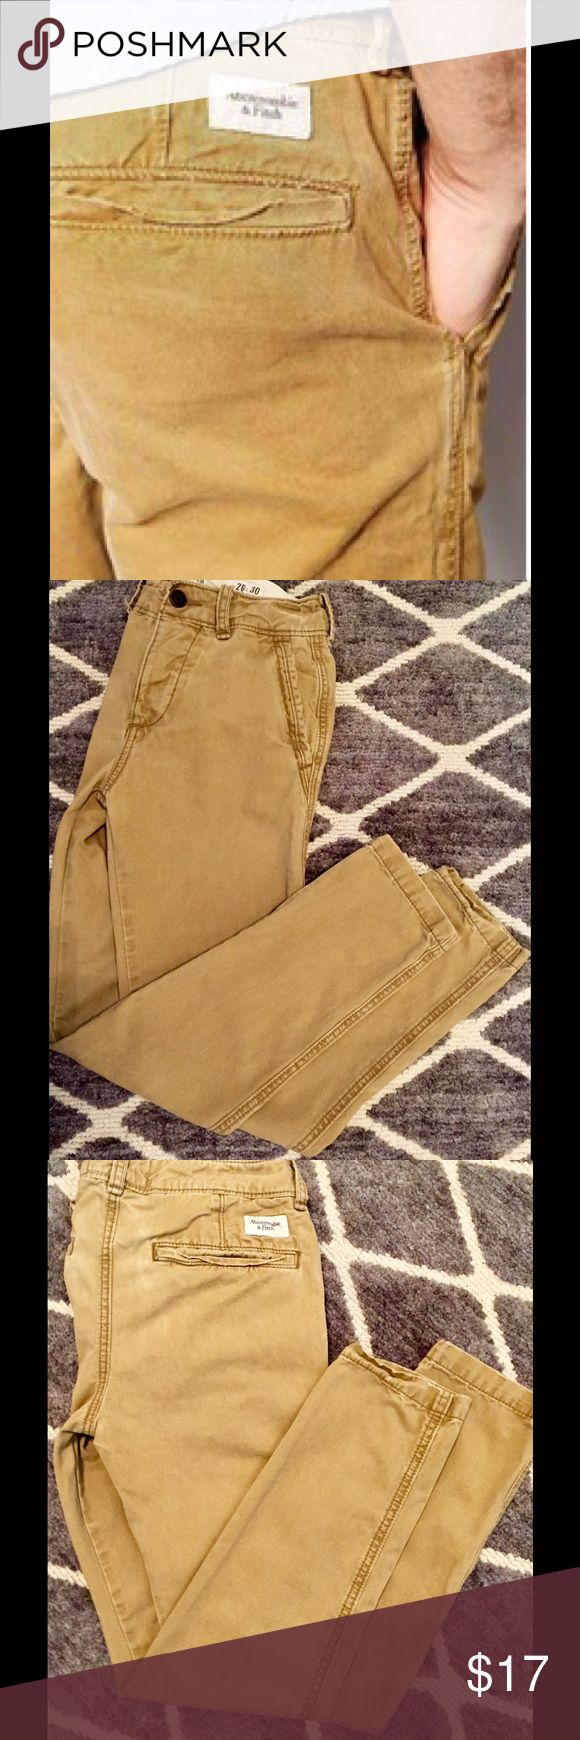 Abercrombie & Fitch Men's Skinny Chinos A classic chino pant with a skinny fit. Soft cotton blend, back pocket details with button closure, button fly. Subtle nicking and grinding at trims. Right coin pocket. Vintage wash in Khakis. Great condition men's A&F skinny chinos size 26W x 30L. Abercrombie & Fitch Pants Chinos & Khakis